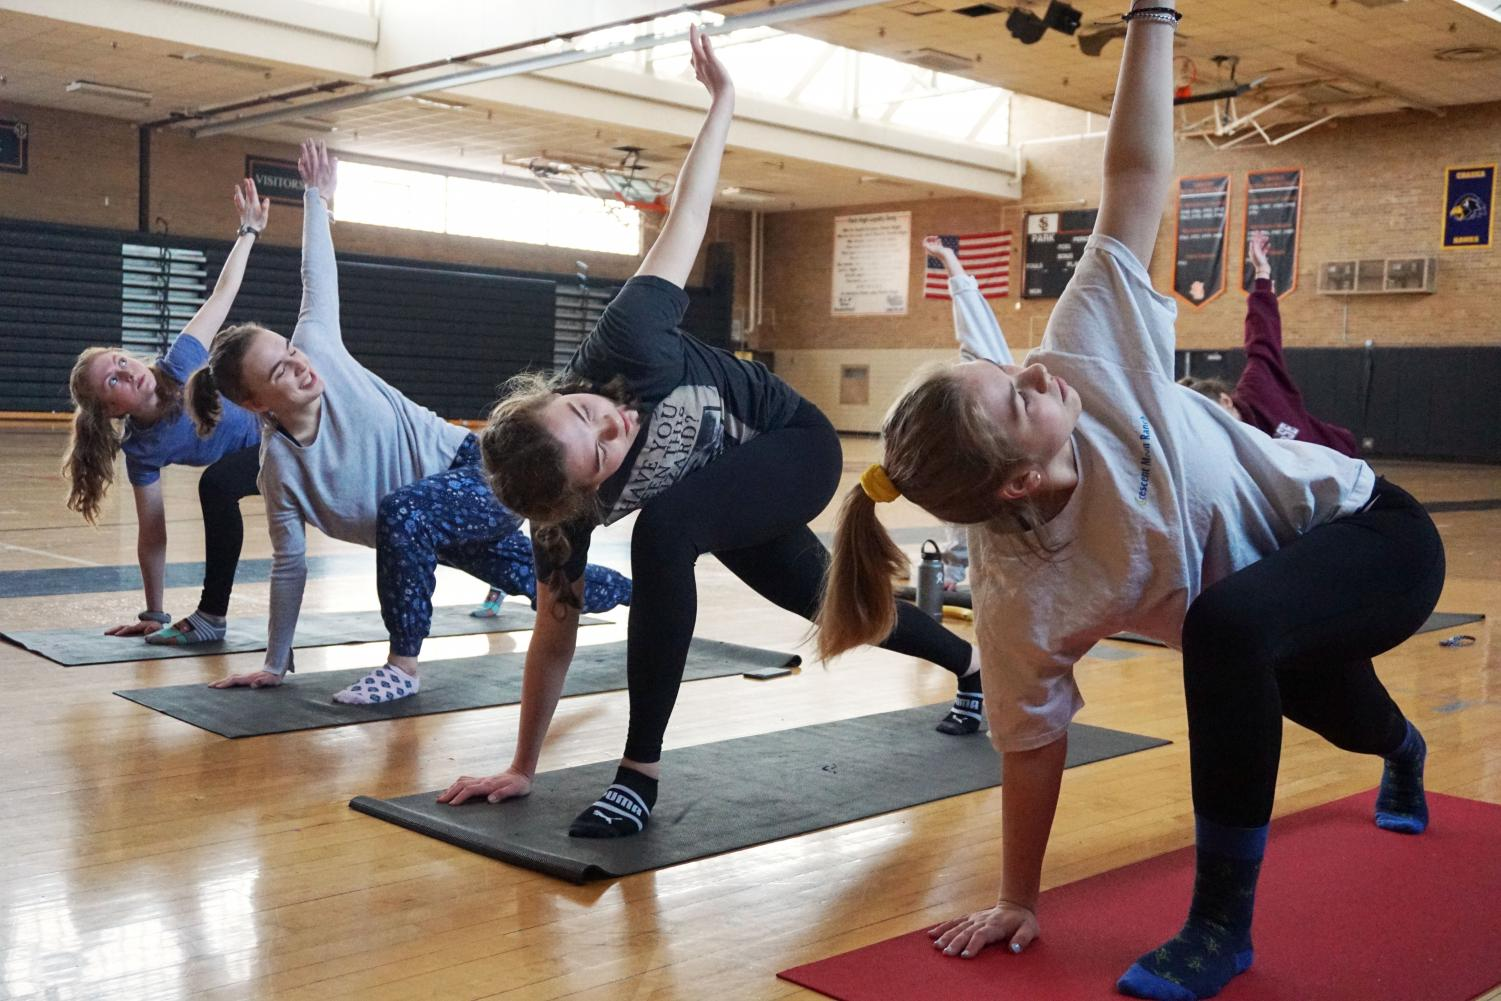 Sophomores Liz Madigan, Elizabeth Orton, Keely Berntsen and Mimi Kniser participate in yoga club before school March 28 as a way to destress before the hectic school day. The club meets every Thursday morning before school in the old gym and is led by math teacher, Bobby Otto.